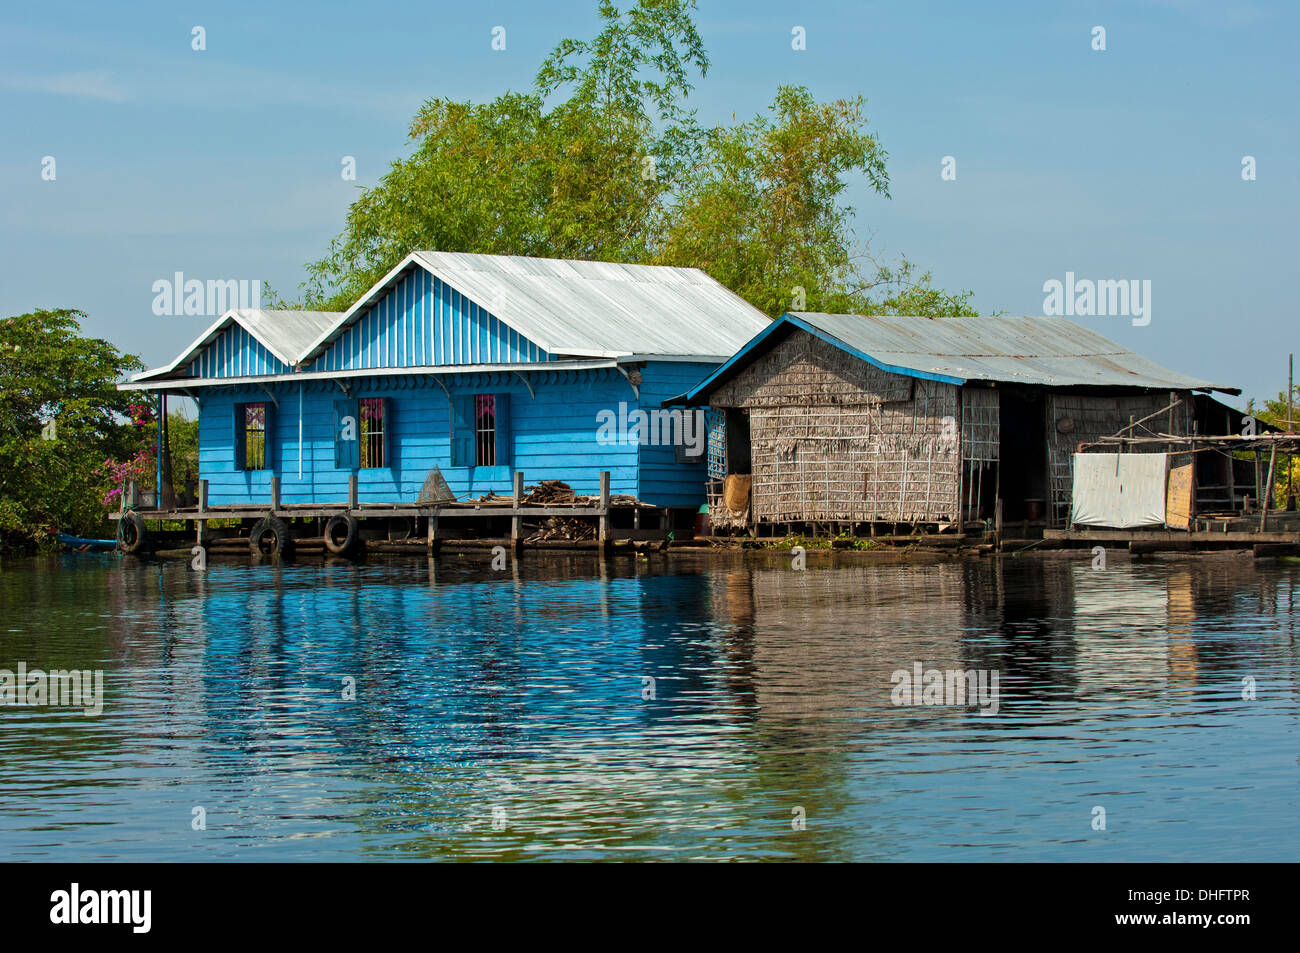 Dwellings of a floating village on the Tonle Sap lake, Cambodia - Stock Image